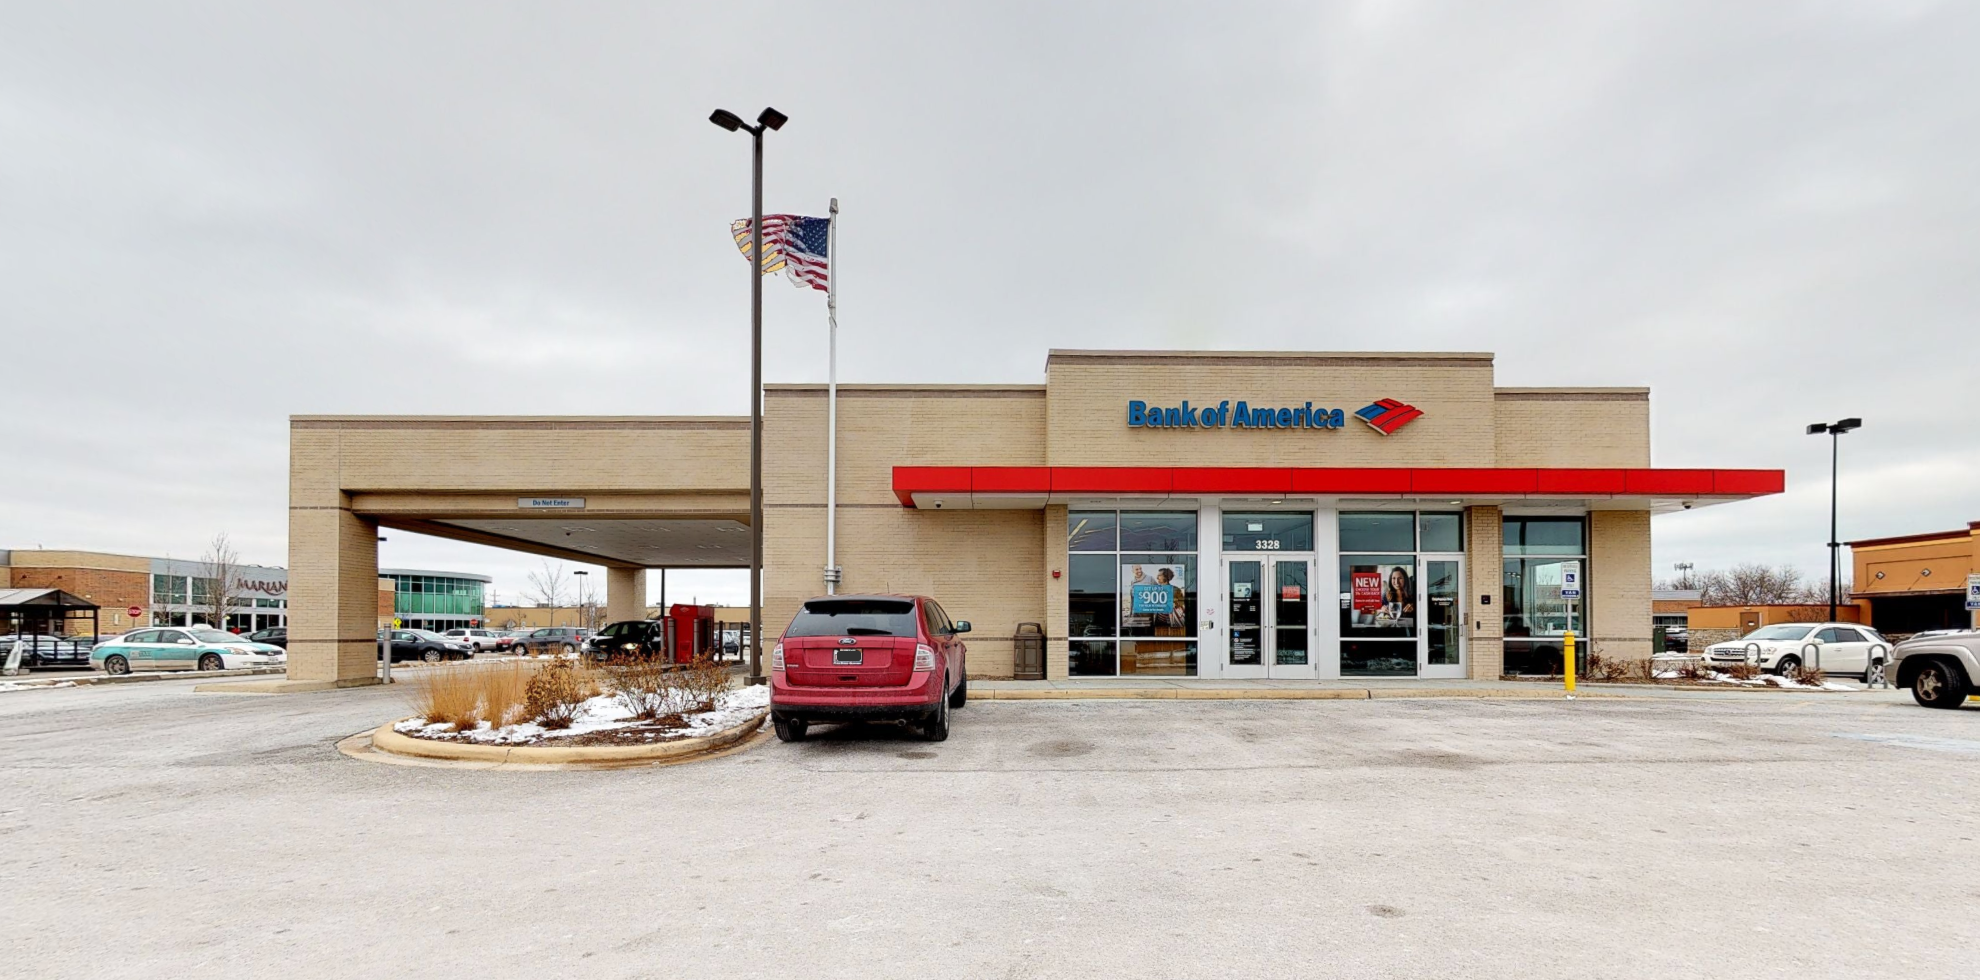 Bank of America financial center with drive-thru ATM   3328 W Touhy Ave, Skokie, IL 60076